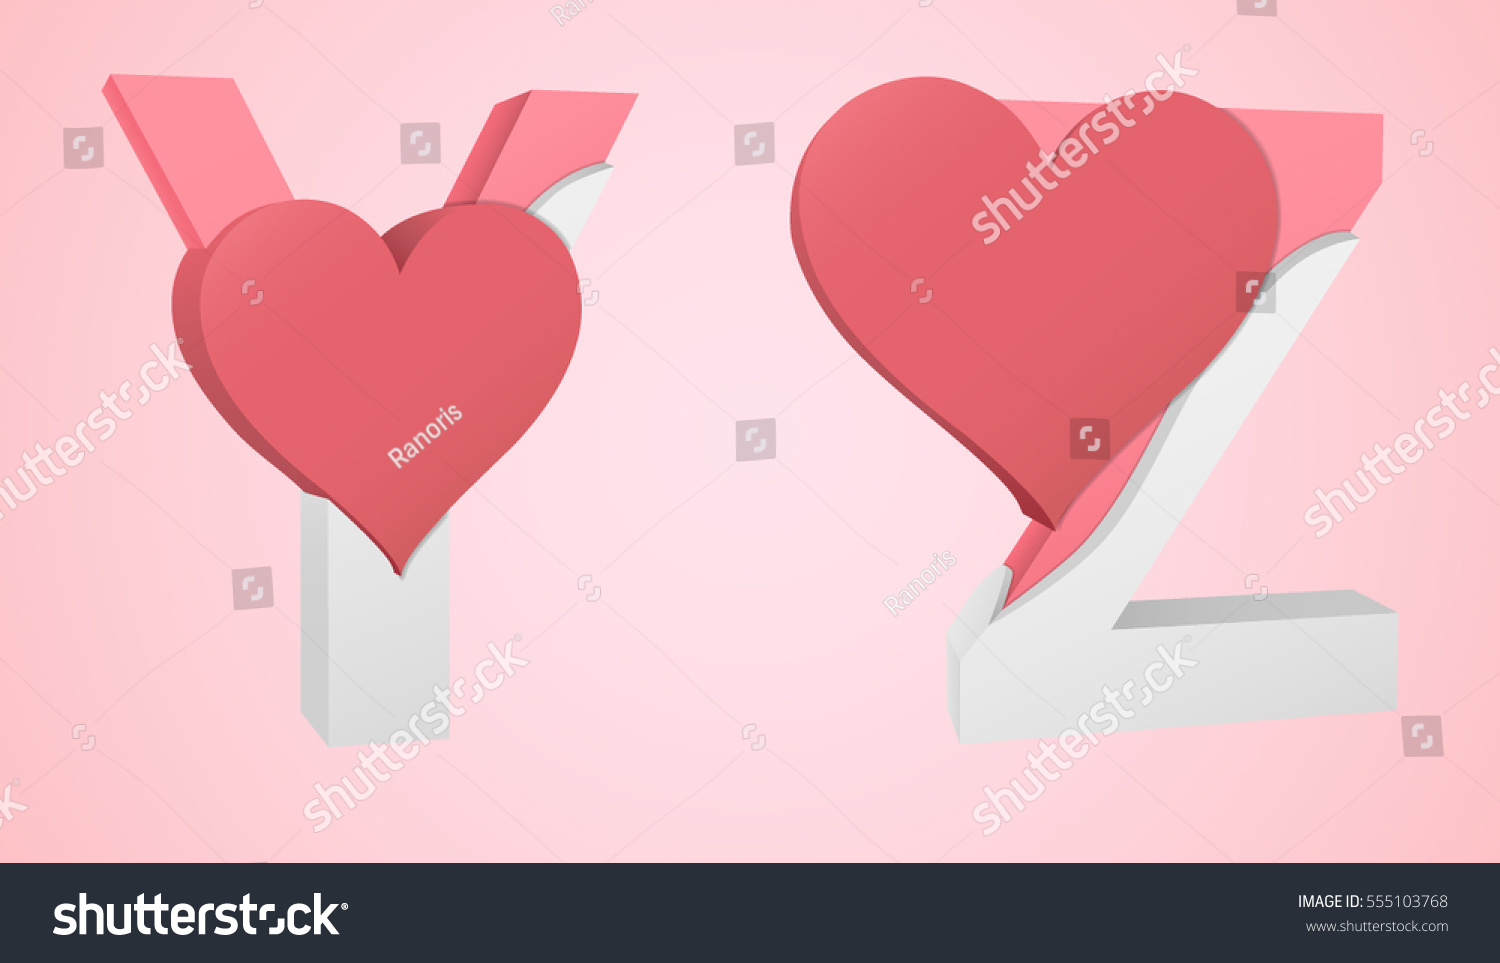 Letters Y Z Color Pink Inside Stock Vector (Royalty Free) 555103768 ...